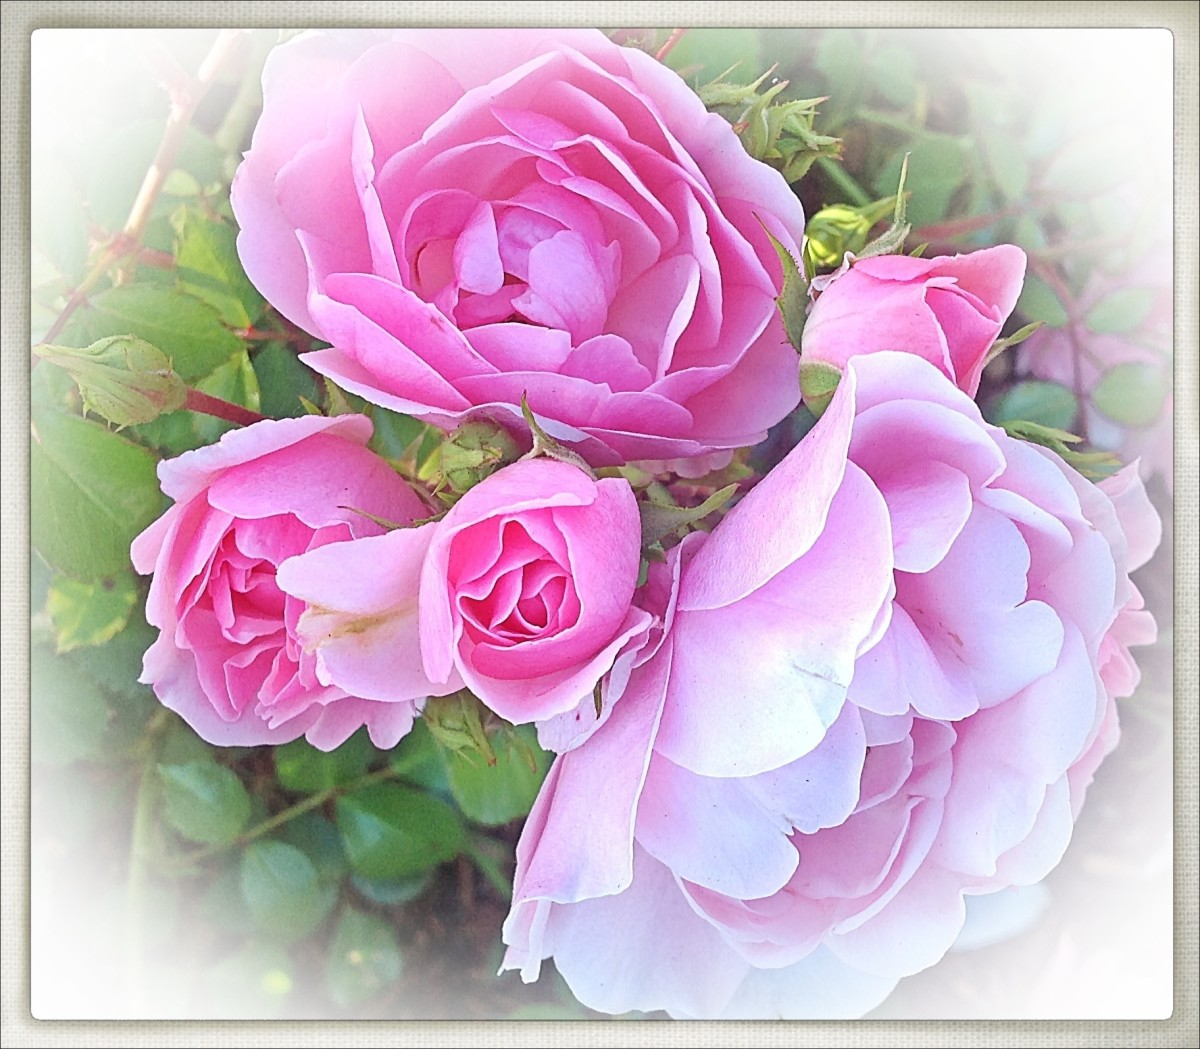 Roses: Plant and Flower Facts, Photos, and Symbolic Meanings